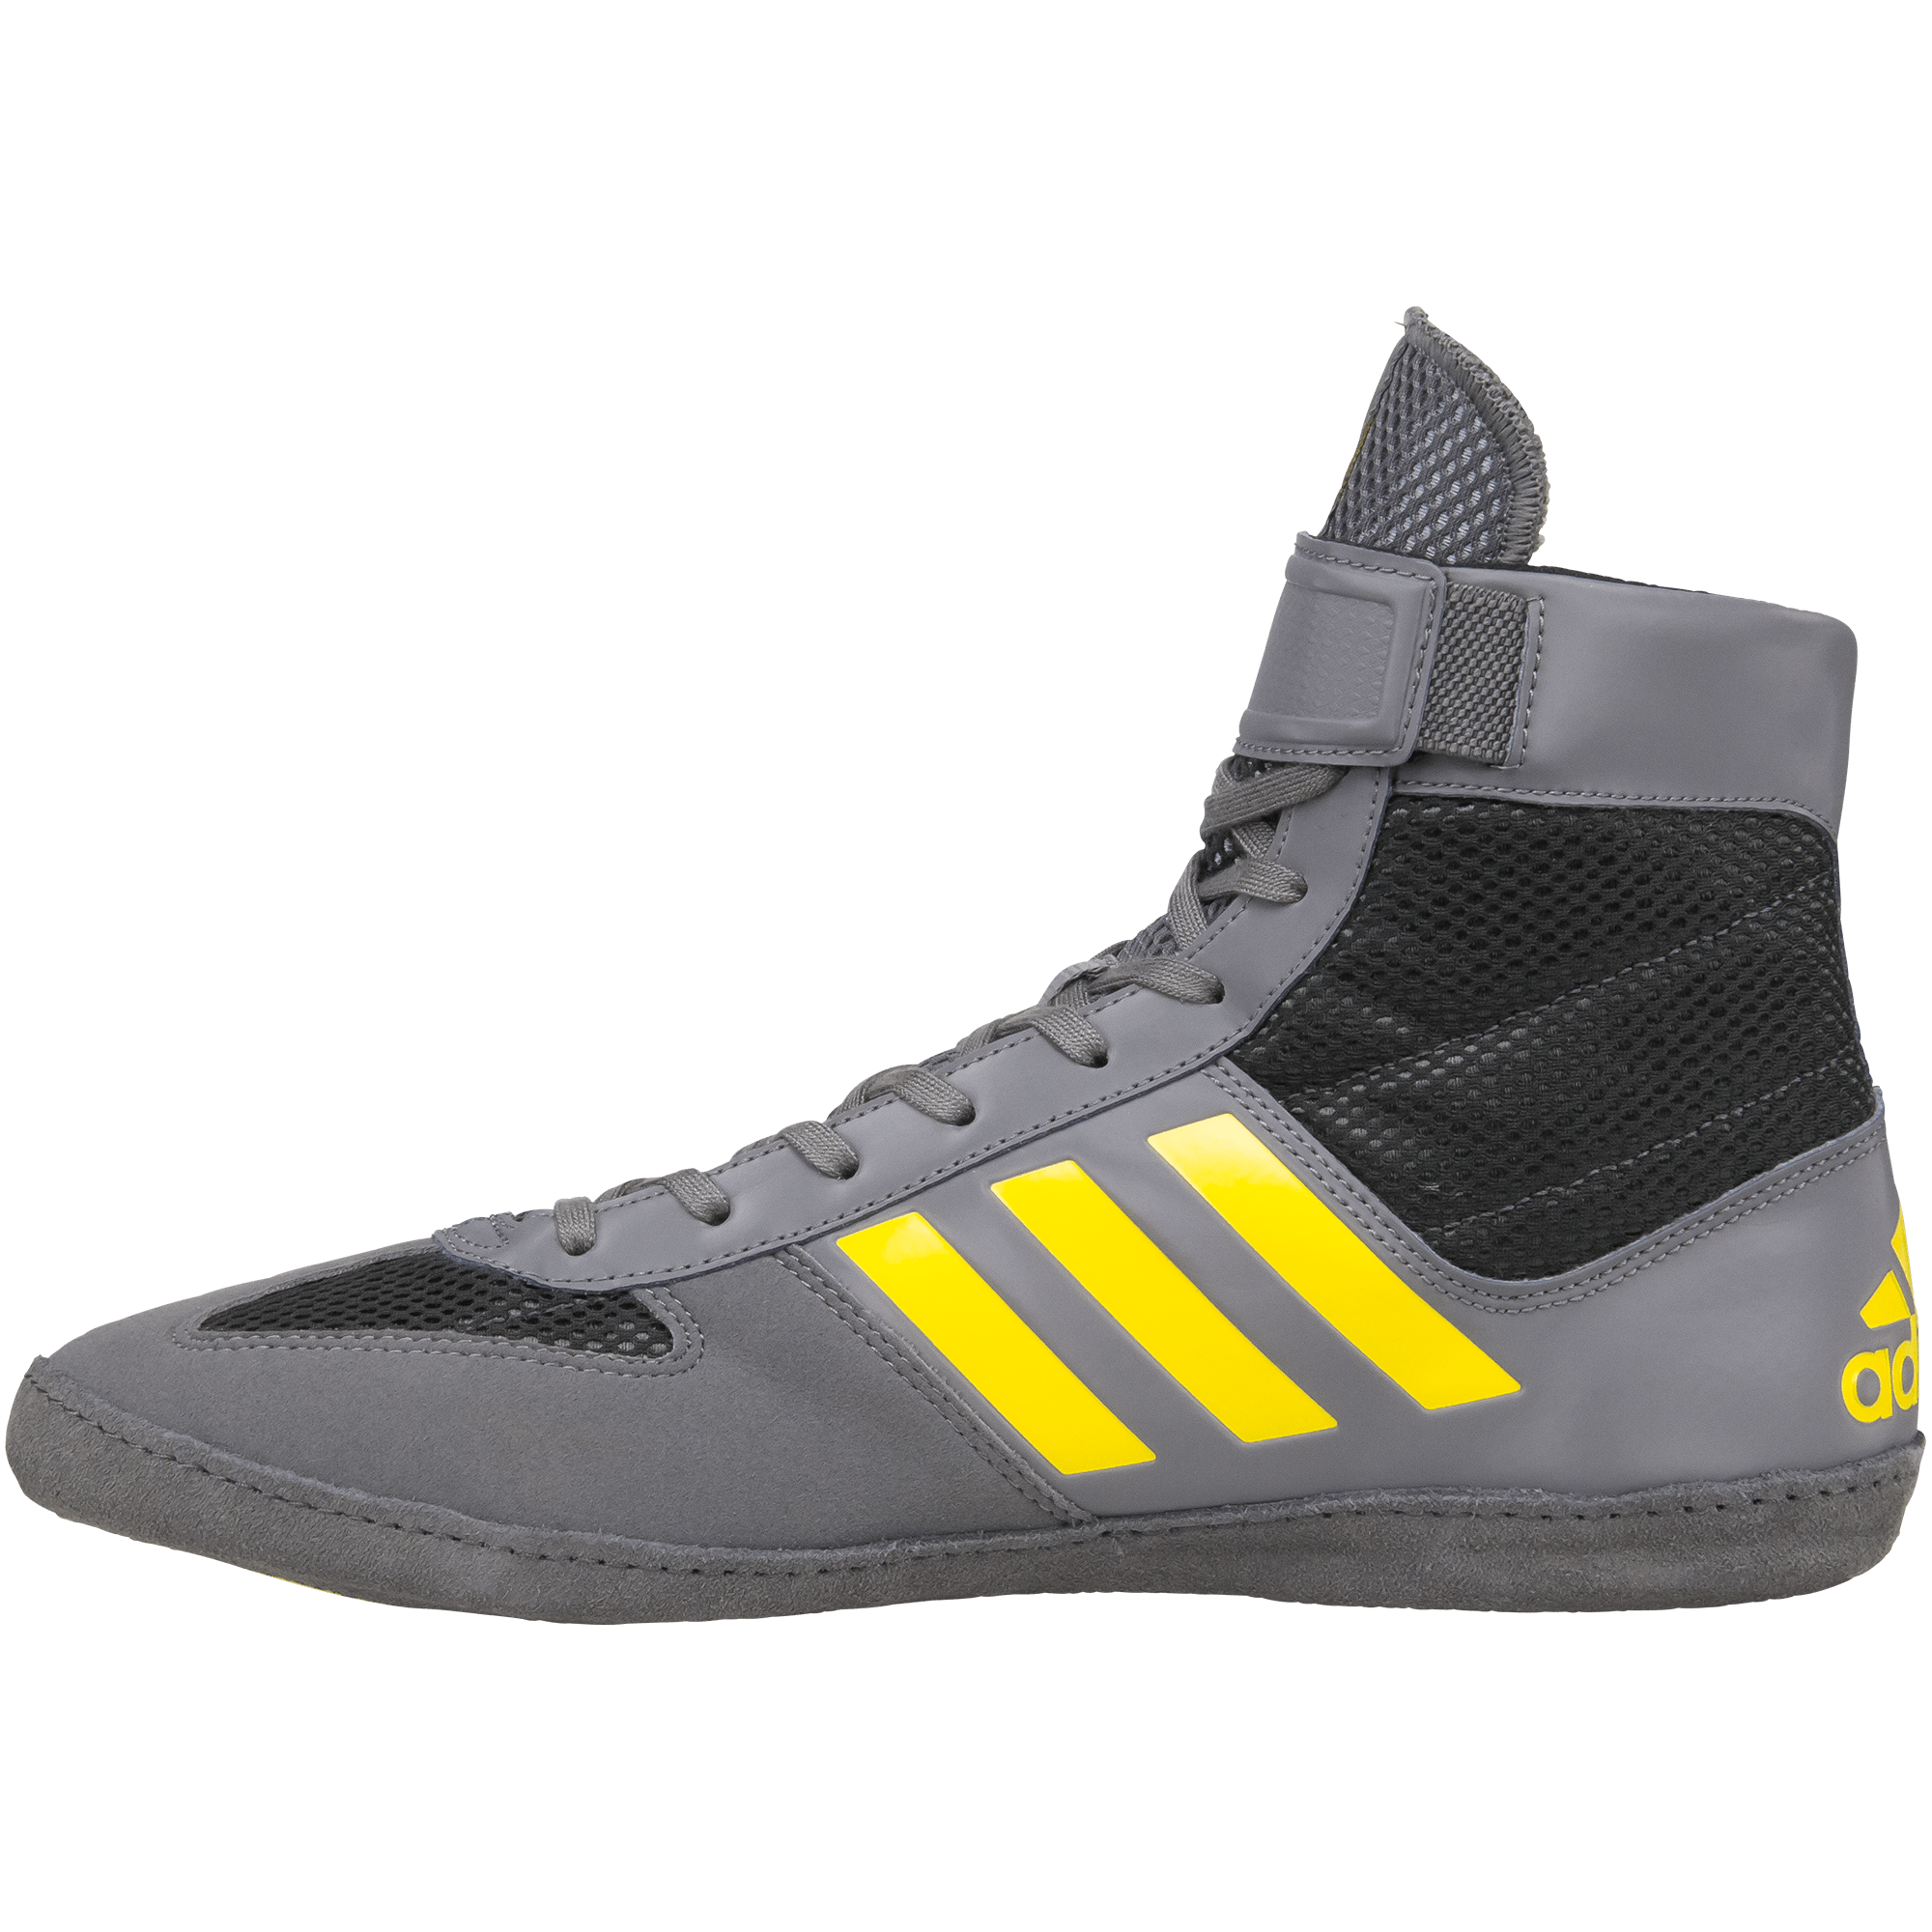 new concept cfd62 2fbde ... Combat Speed 5 Grey Yellow Black frontAdidas Combat Speed 5 Grey Yellow  Black backAdidas Combat Speed 5 Grey Yellow Black soleAdidas Combat Speed 5  Grey ...